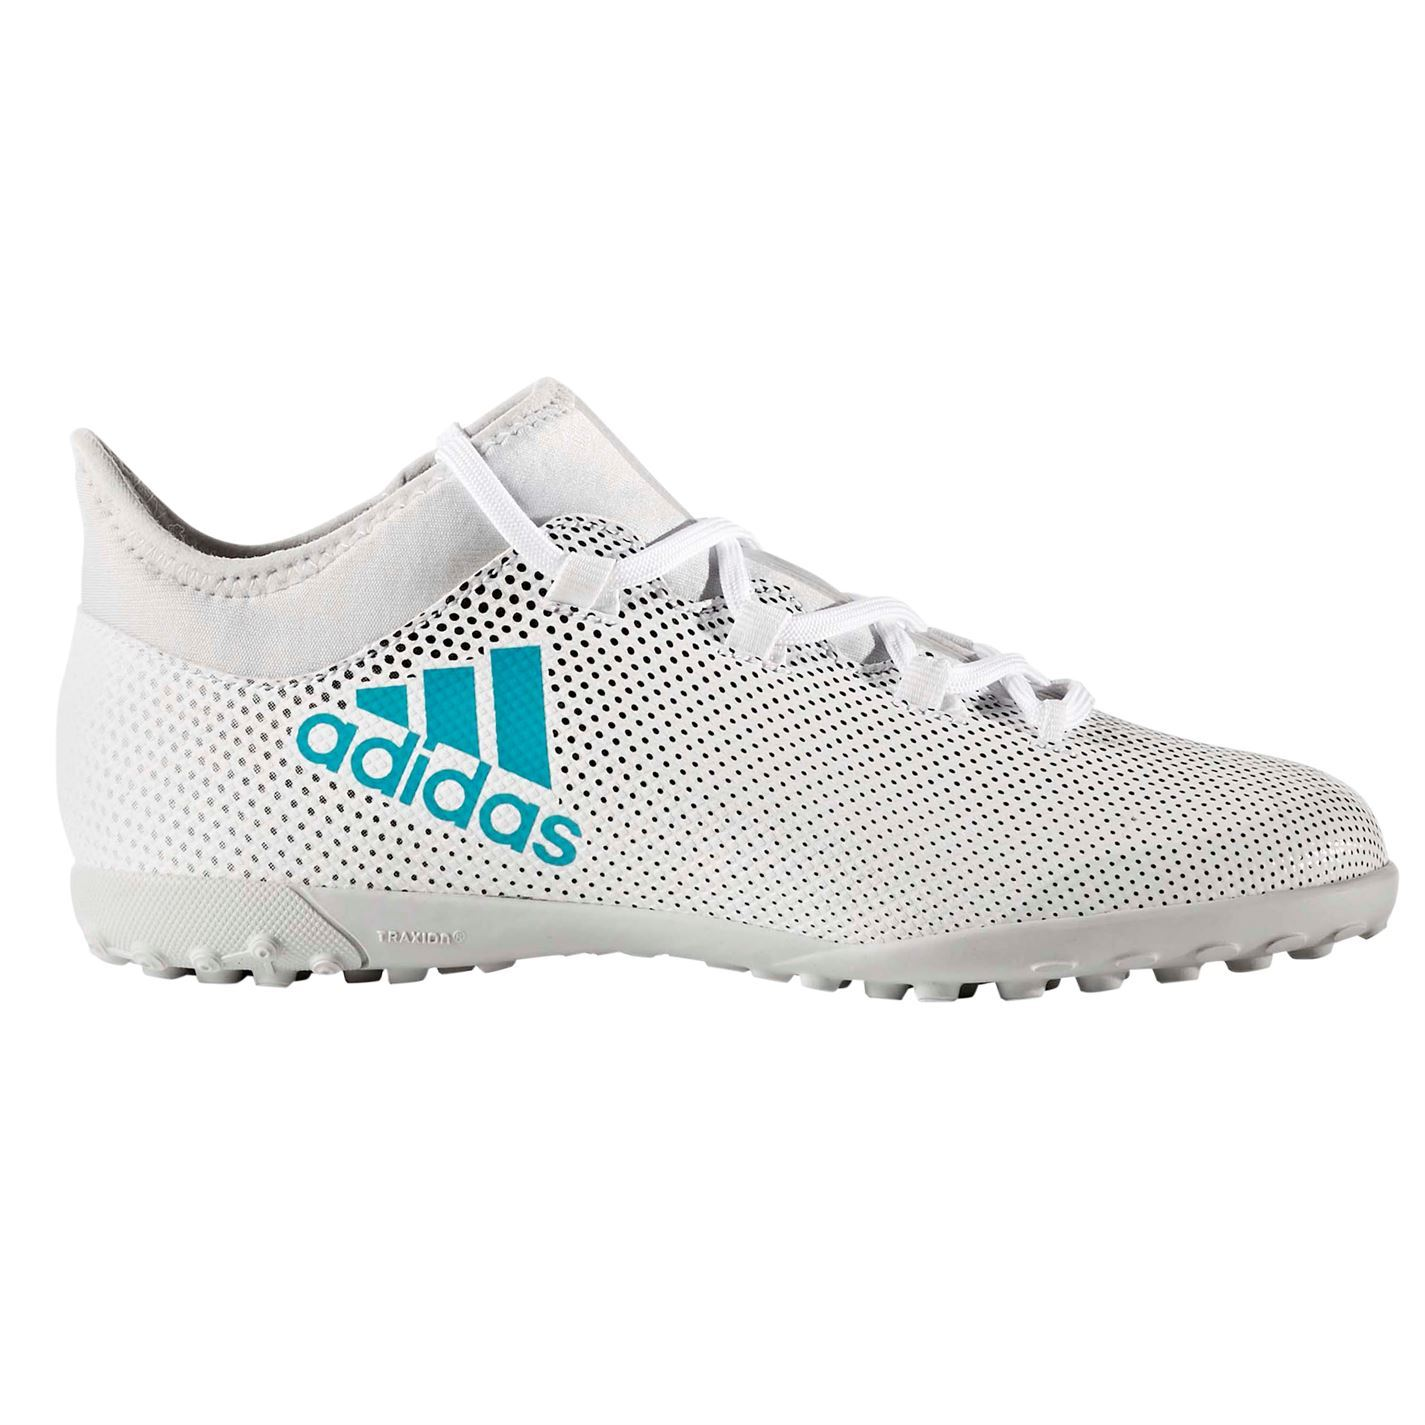 407f51b5a52 adidas Kids X Tango 17.3 Turf Football Boots Trainers Boys Shoes ...